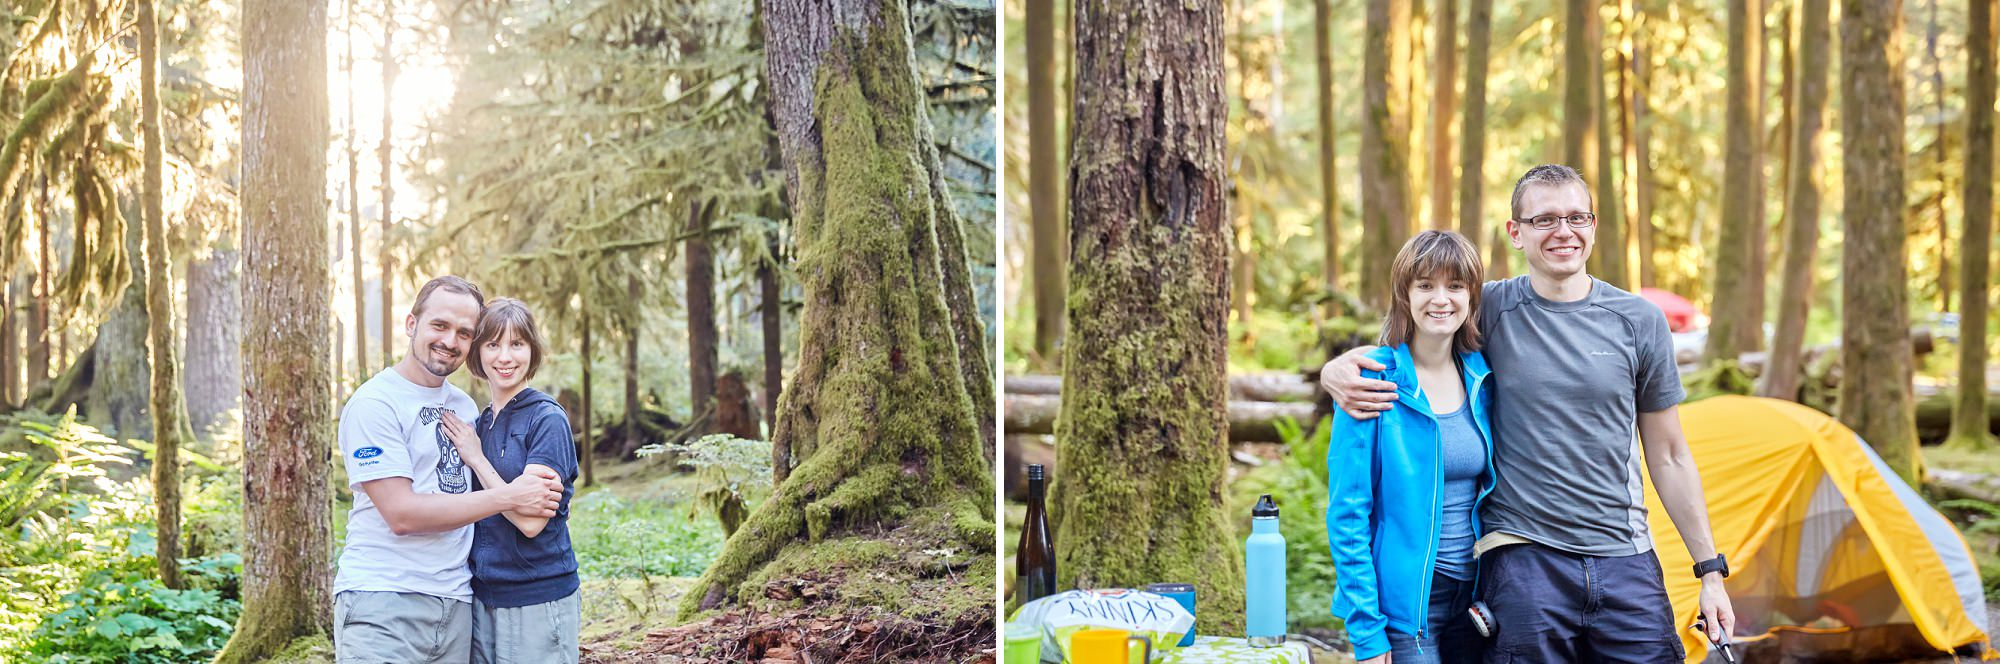 Camping in the Olympic Peninsula